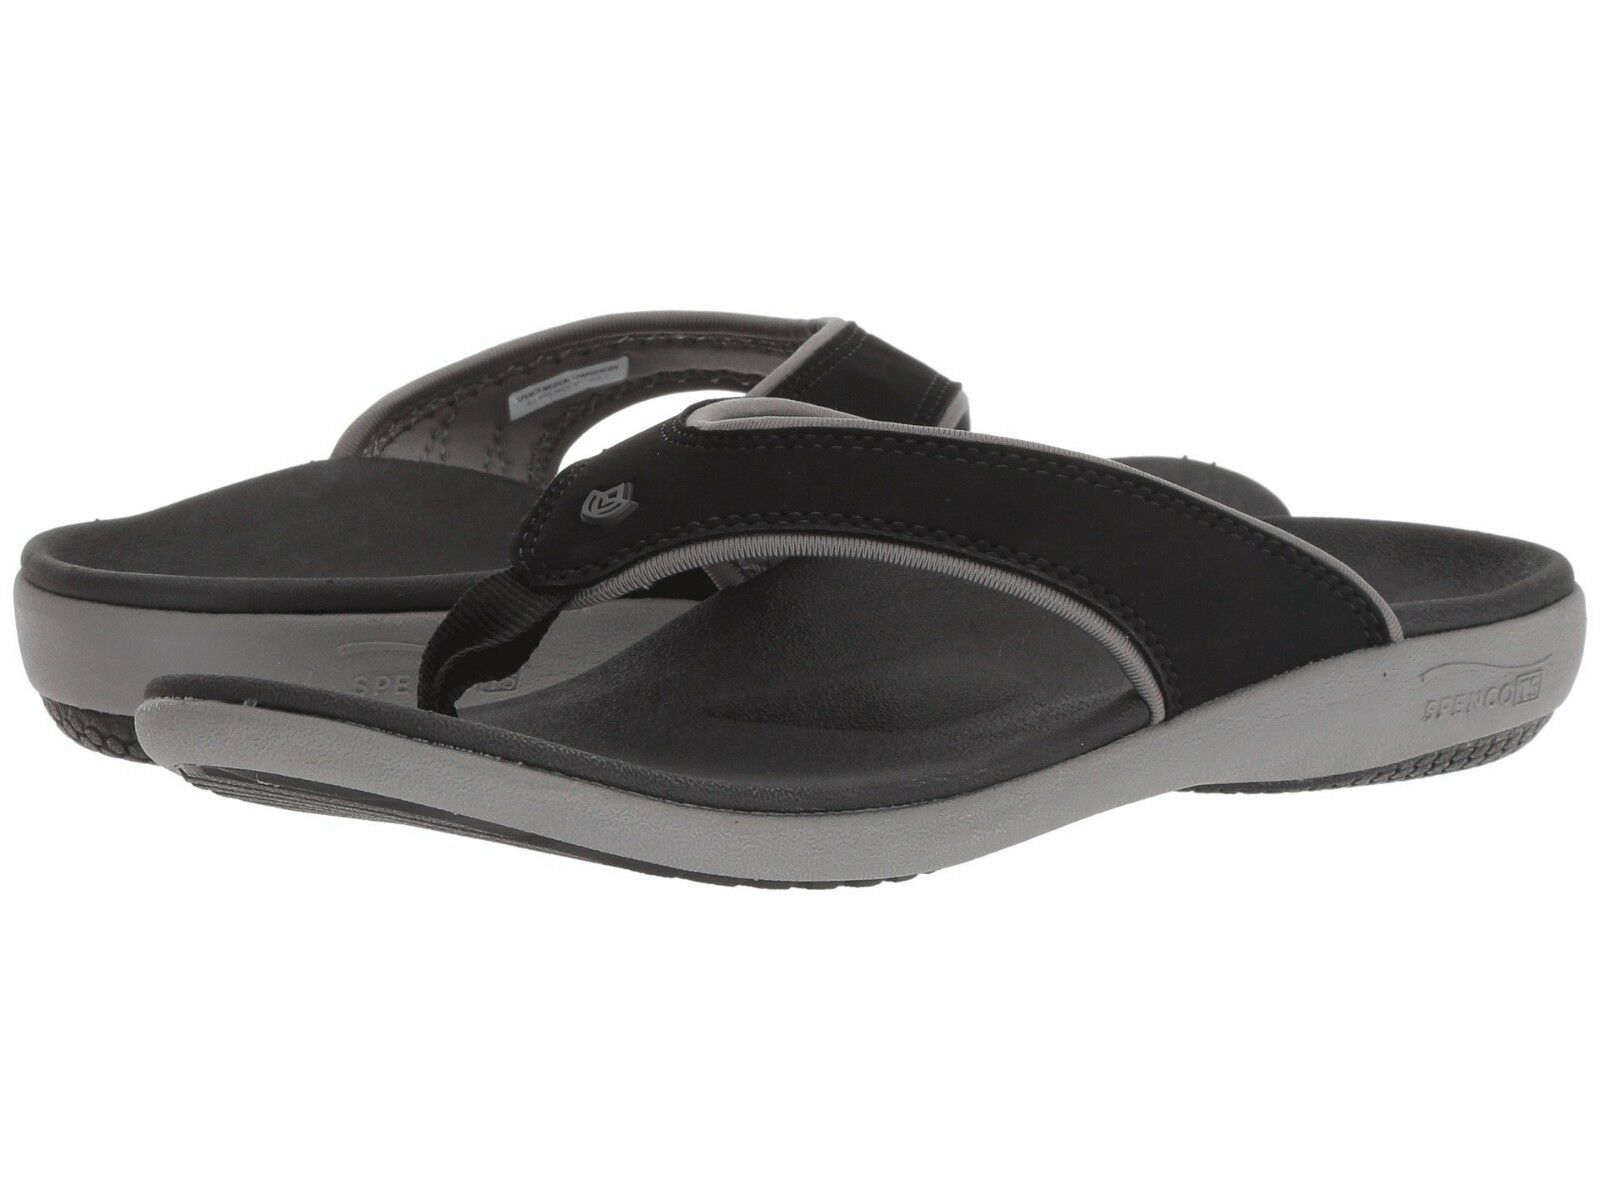 Spenco Sandal Total Support Thong Women Yumi Plus  Black Flip Flop Medium (M, B)